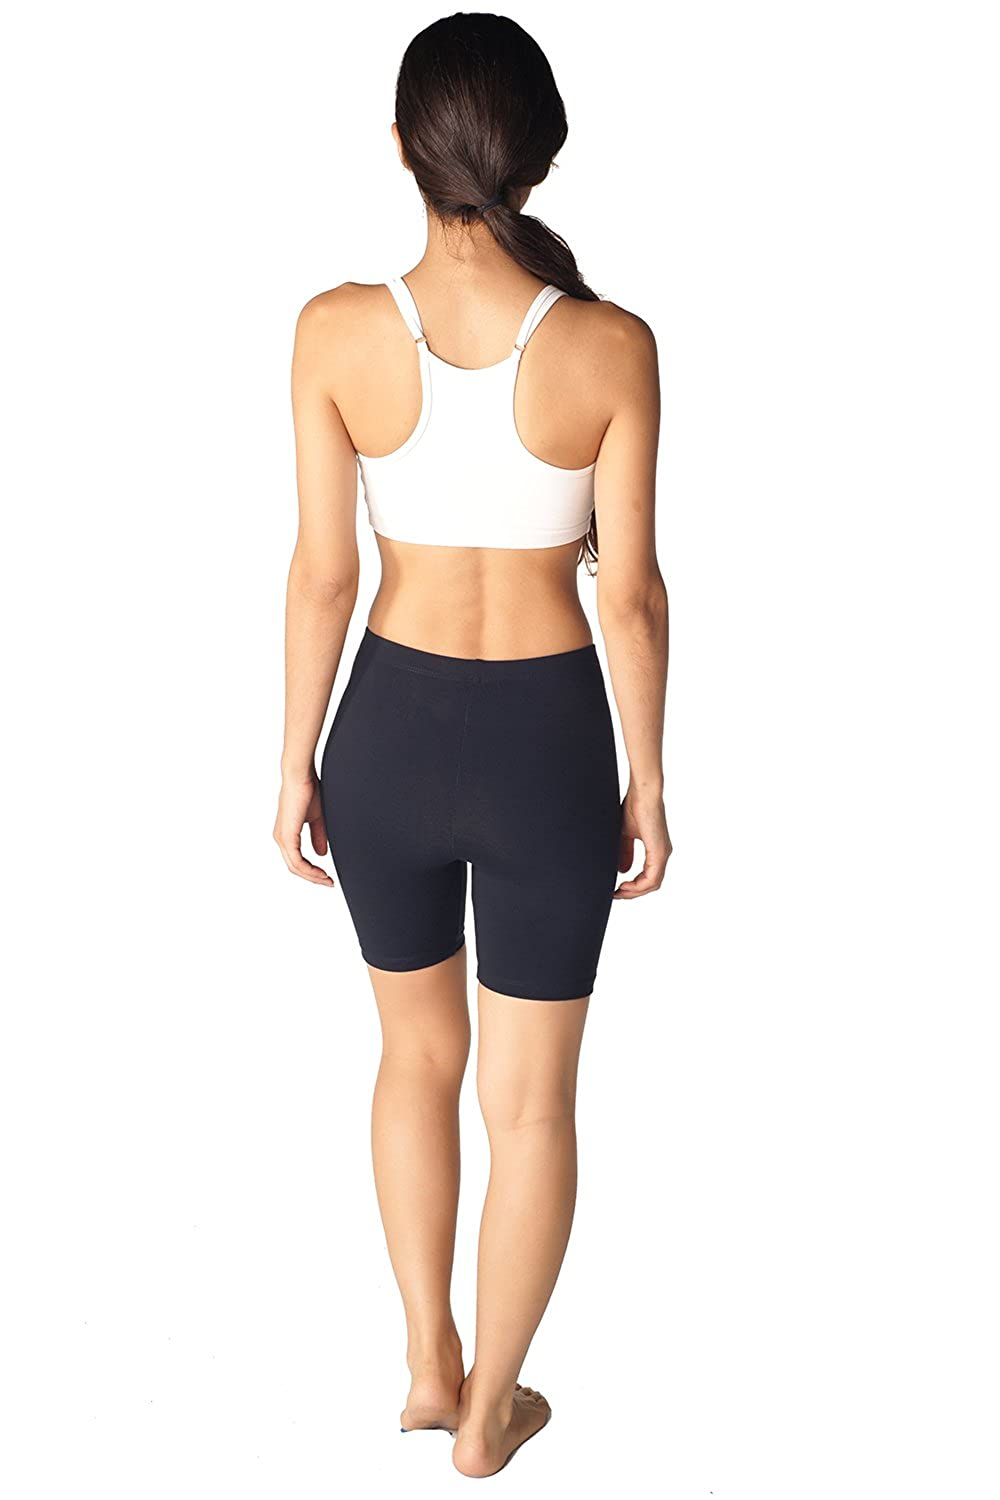 Womens Combed Cotton Basics 5 Inch Bike Short By In Touch At Amazon Golf Wiring Schematicit Shortsi Put The Positive Battery Cable On Clothing Store Athletic Shorts